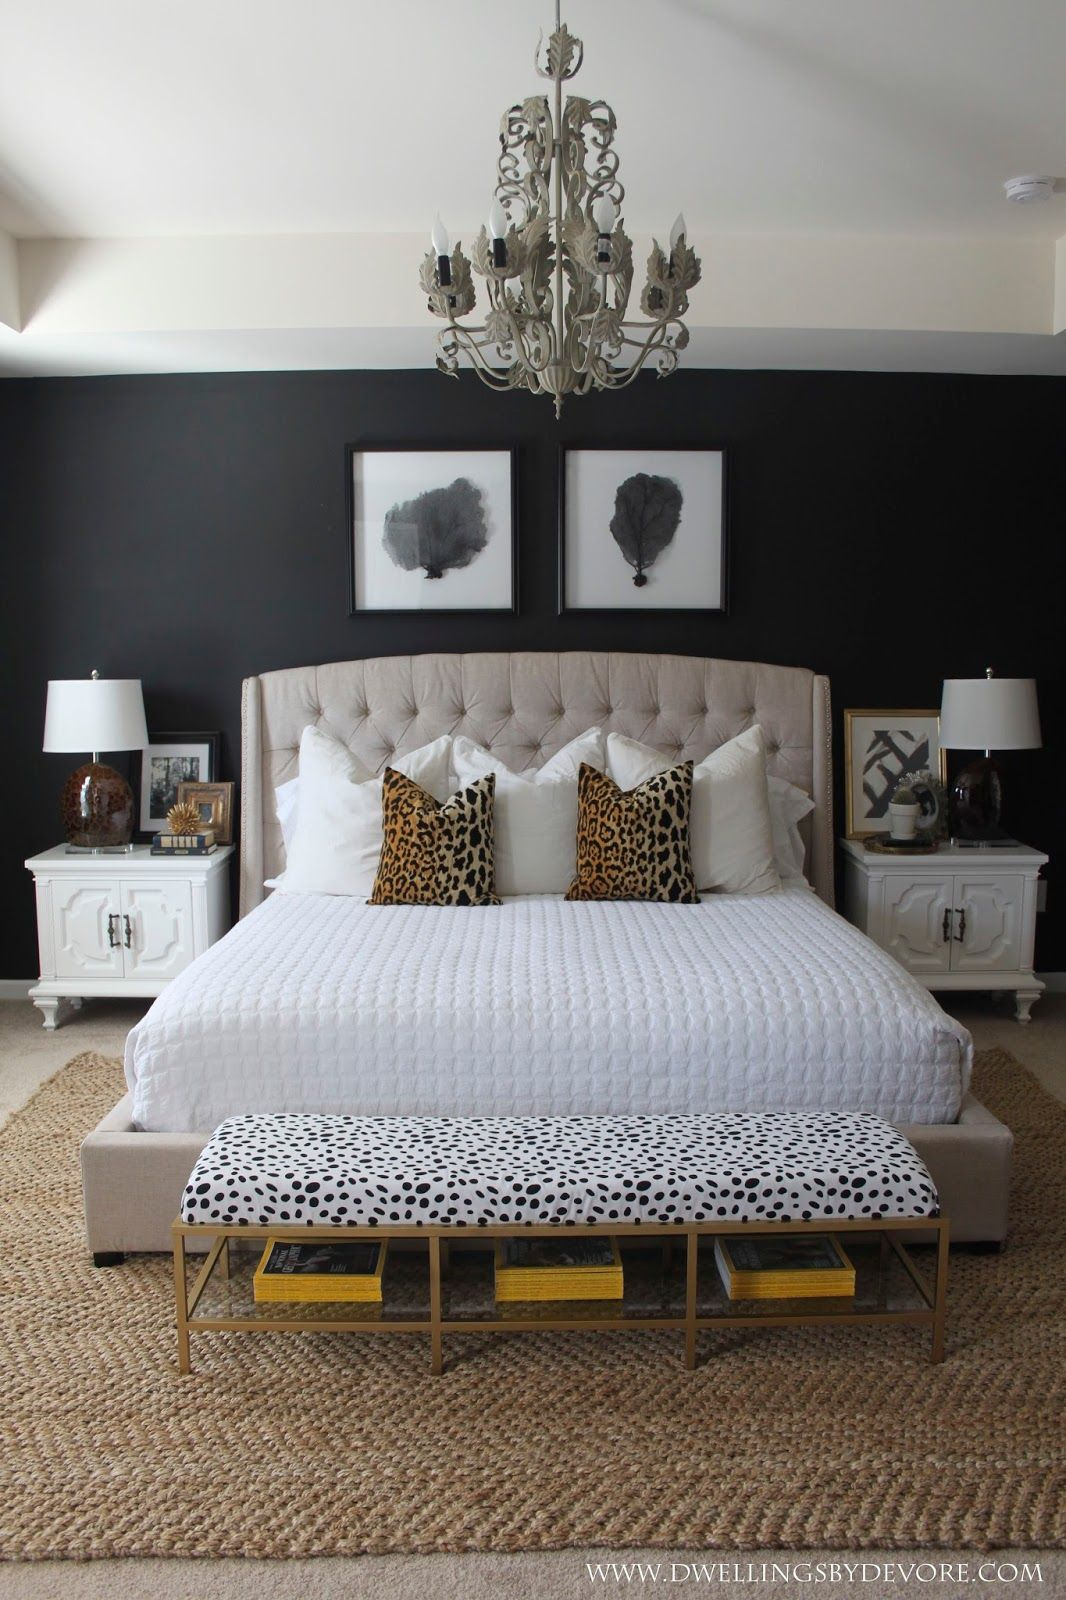 Creating A Meaningful Home Dwellings By Devore Bedroom Makeover